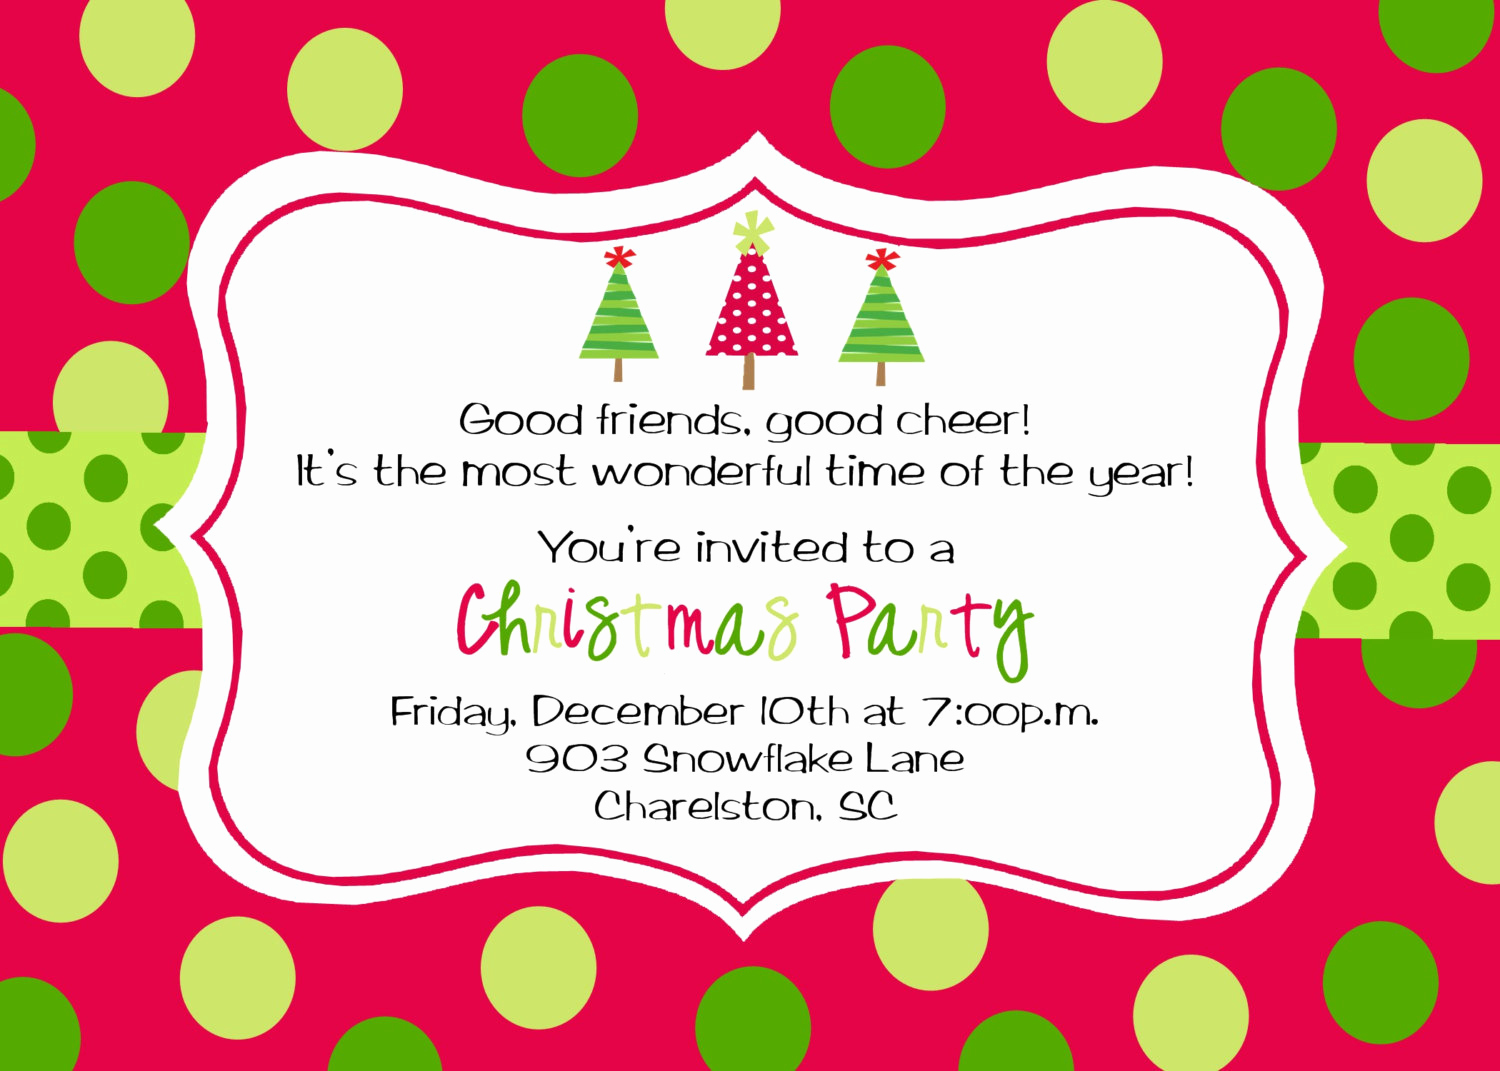 Christmas Party Invitation Template Fresh Christmas Party Invitations